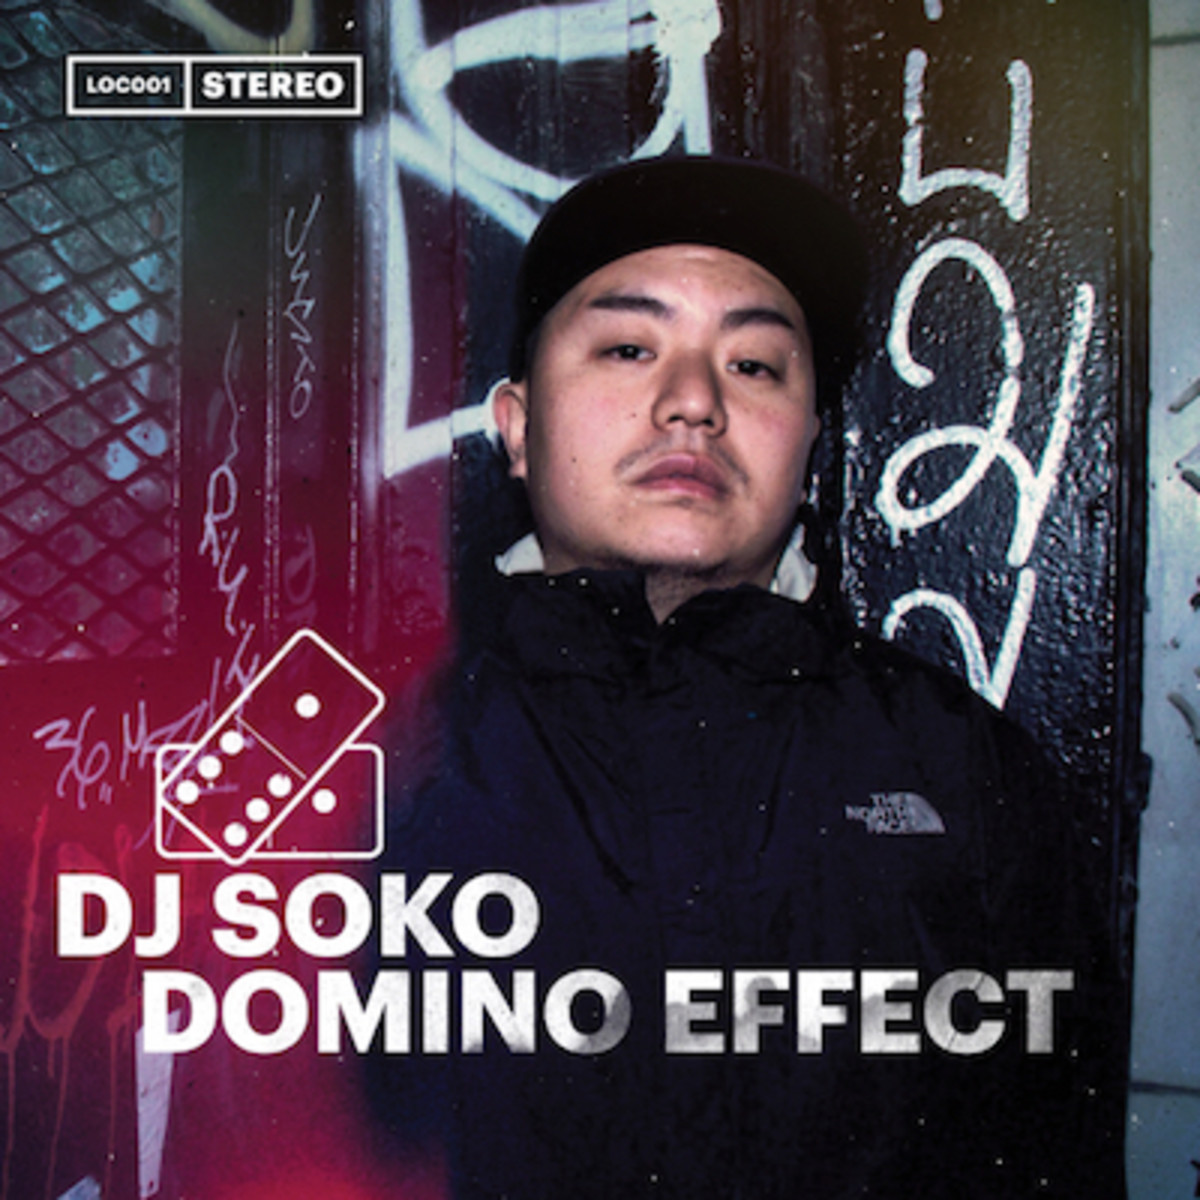 dj-soko-domino-effect.jpg